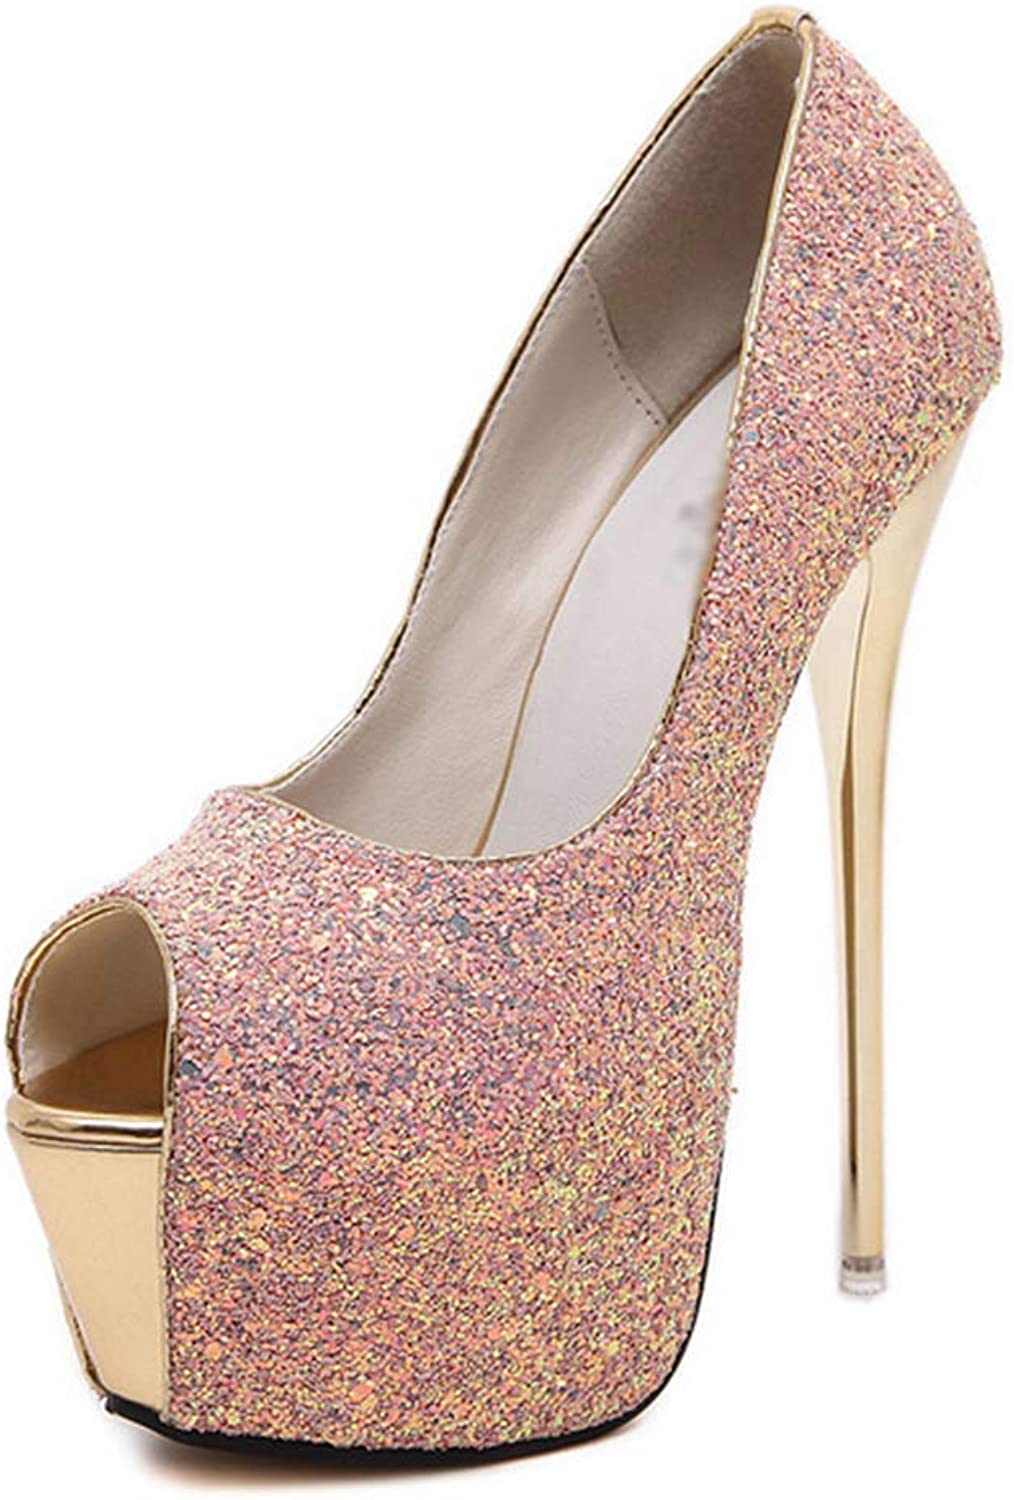 Phil Betty Women's Pumps,Sexy Sequin Fish Mouth Super High Heel White Pink Platform shoes